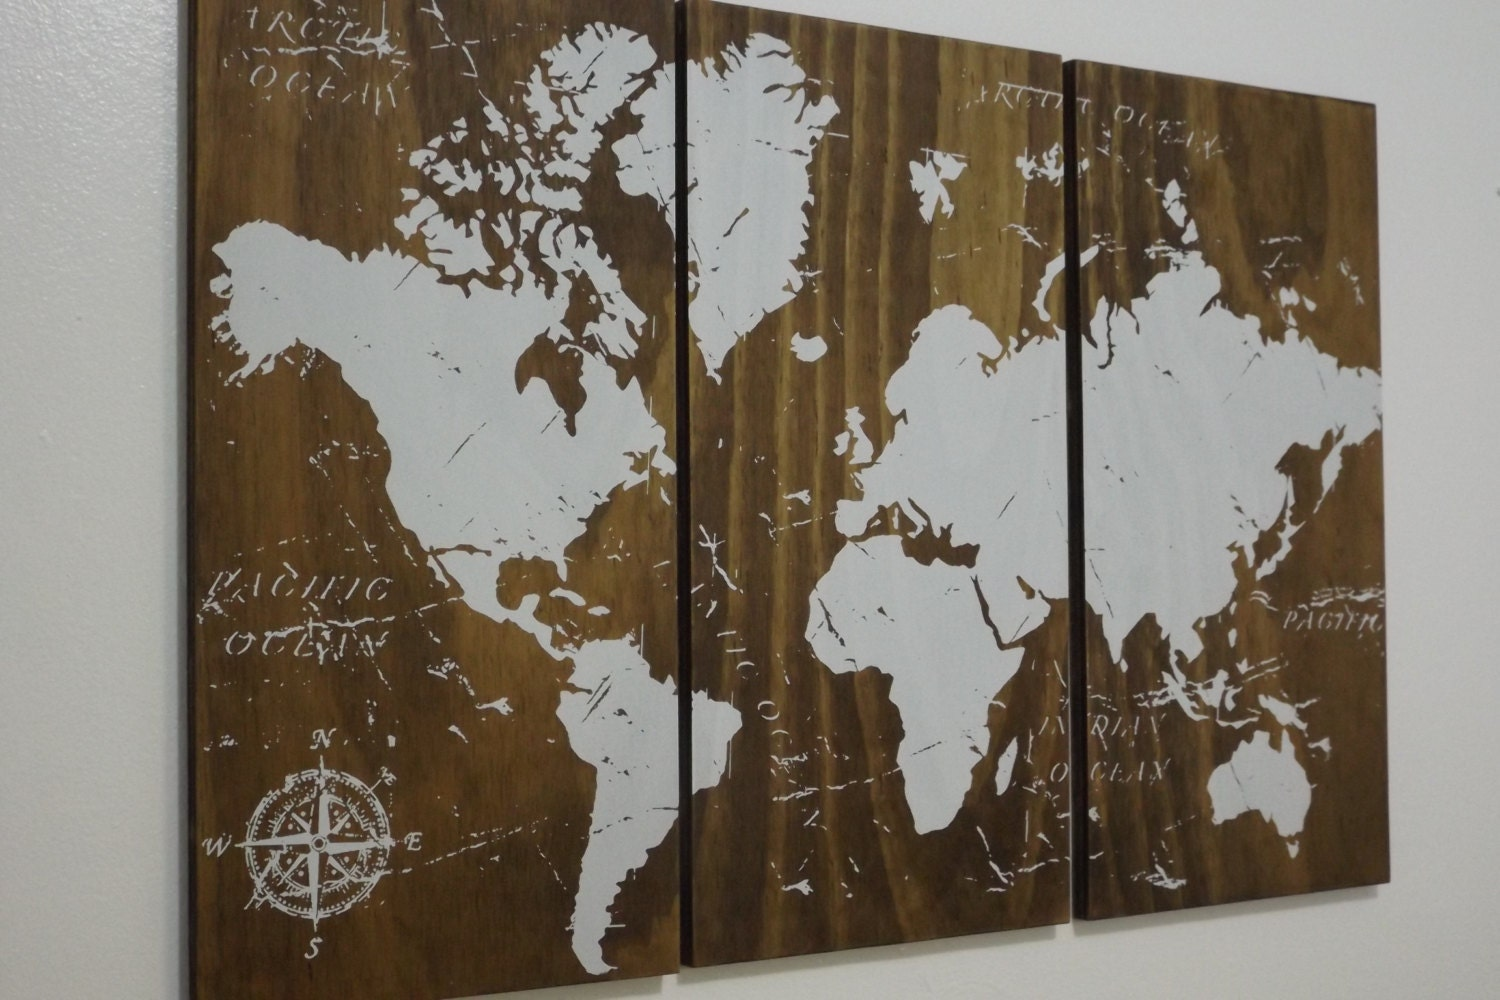 Old World Map Push Pin Travel Map Solid Wood Wall Art World – Travel Map With Pins